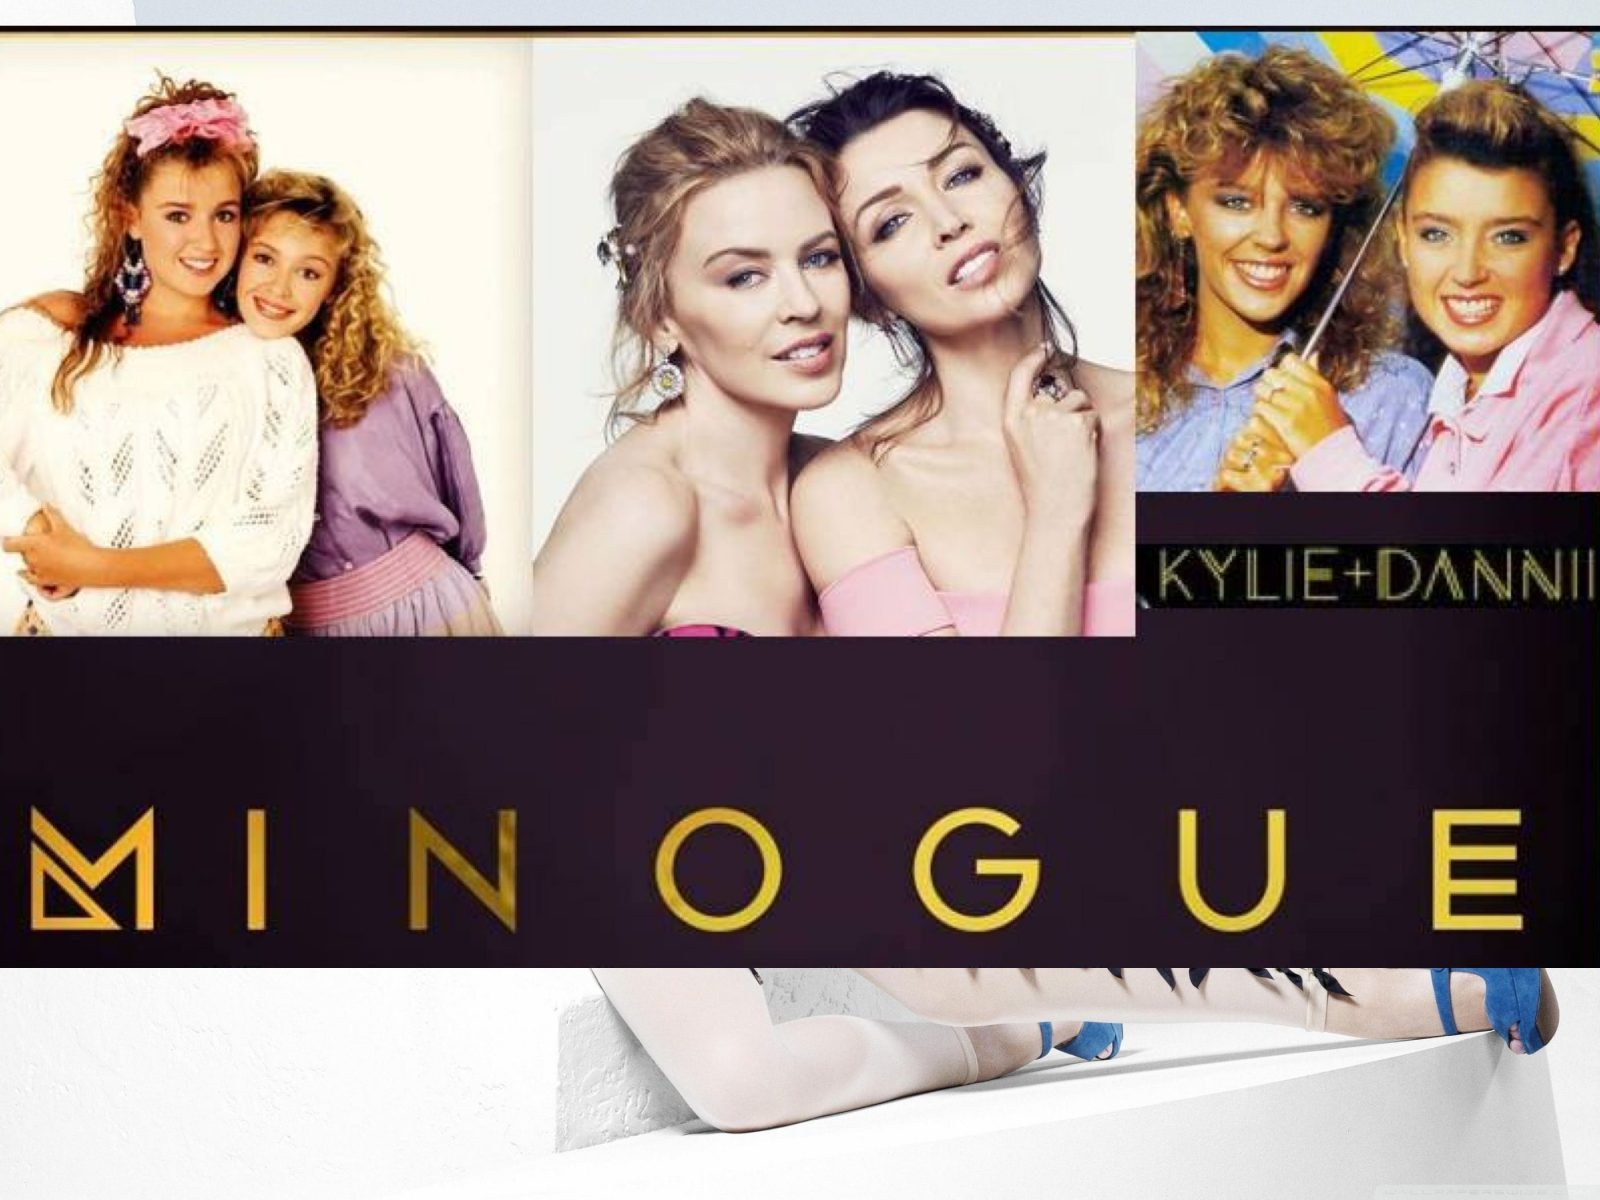 Minogue Dannii vs Kylie